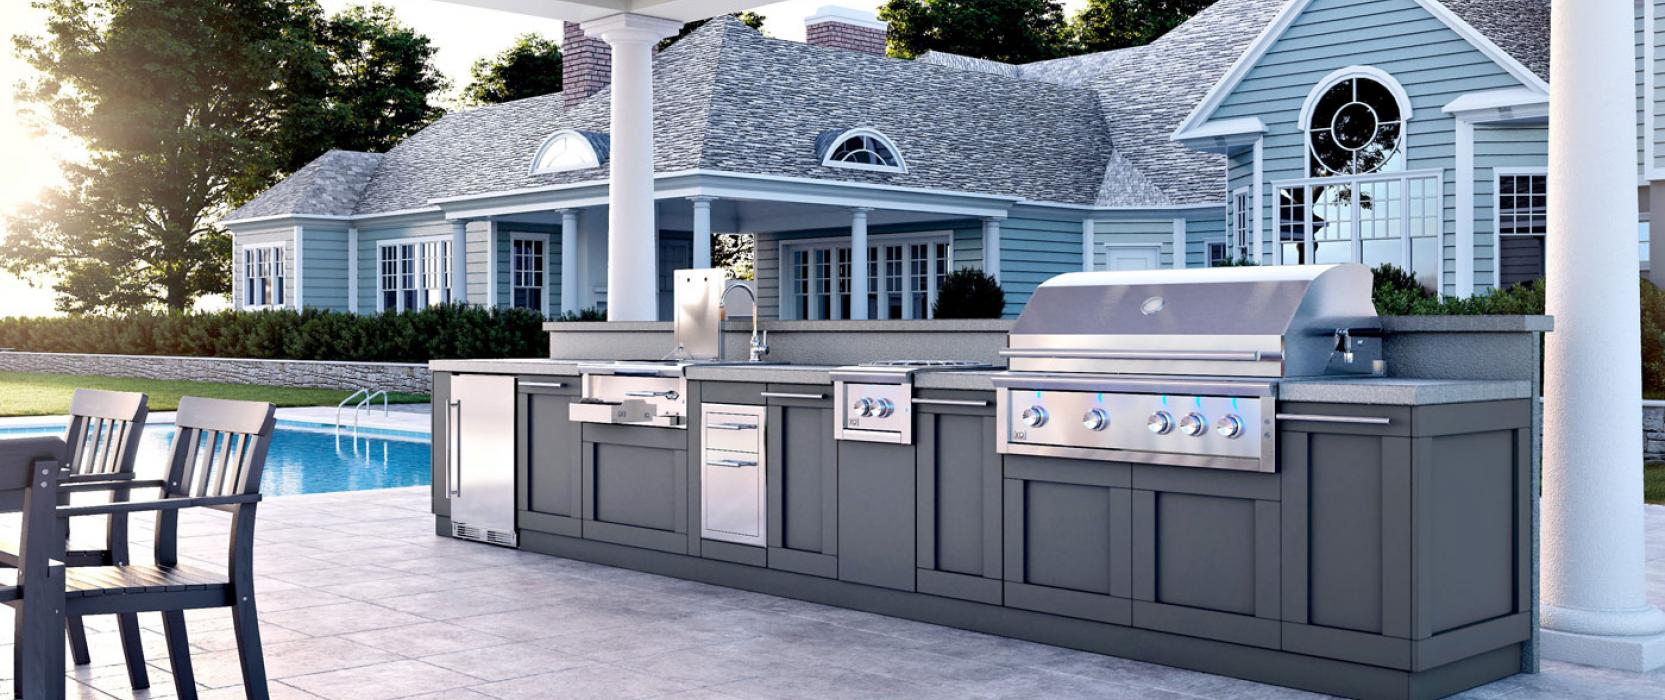 Outdoor kitchen in backyard next to pool